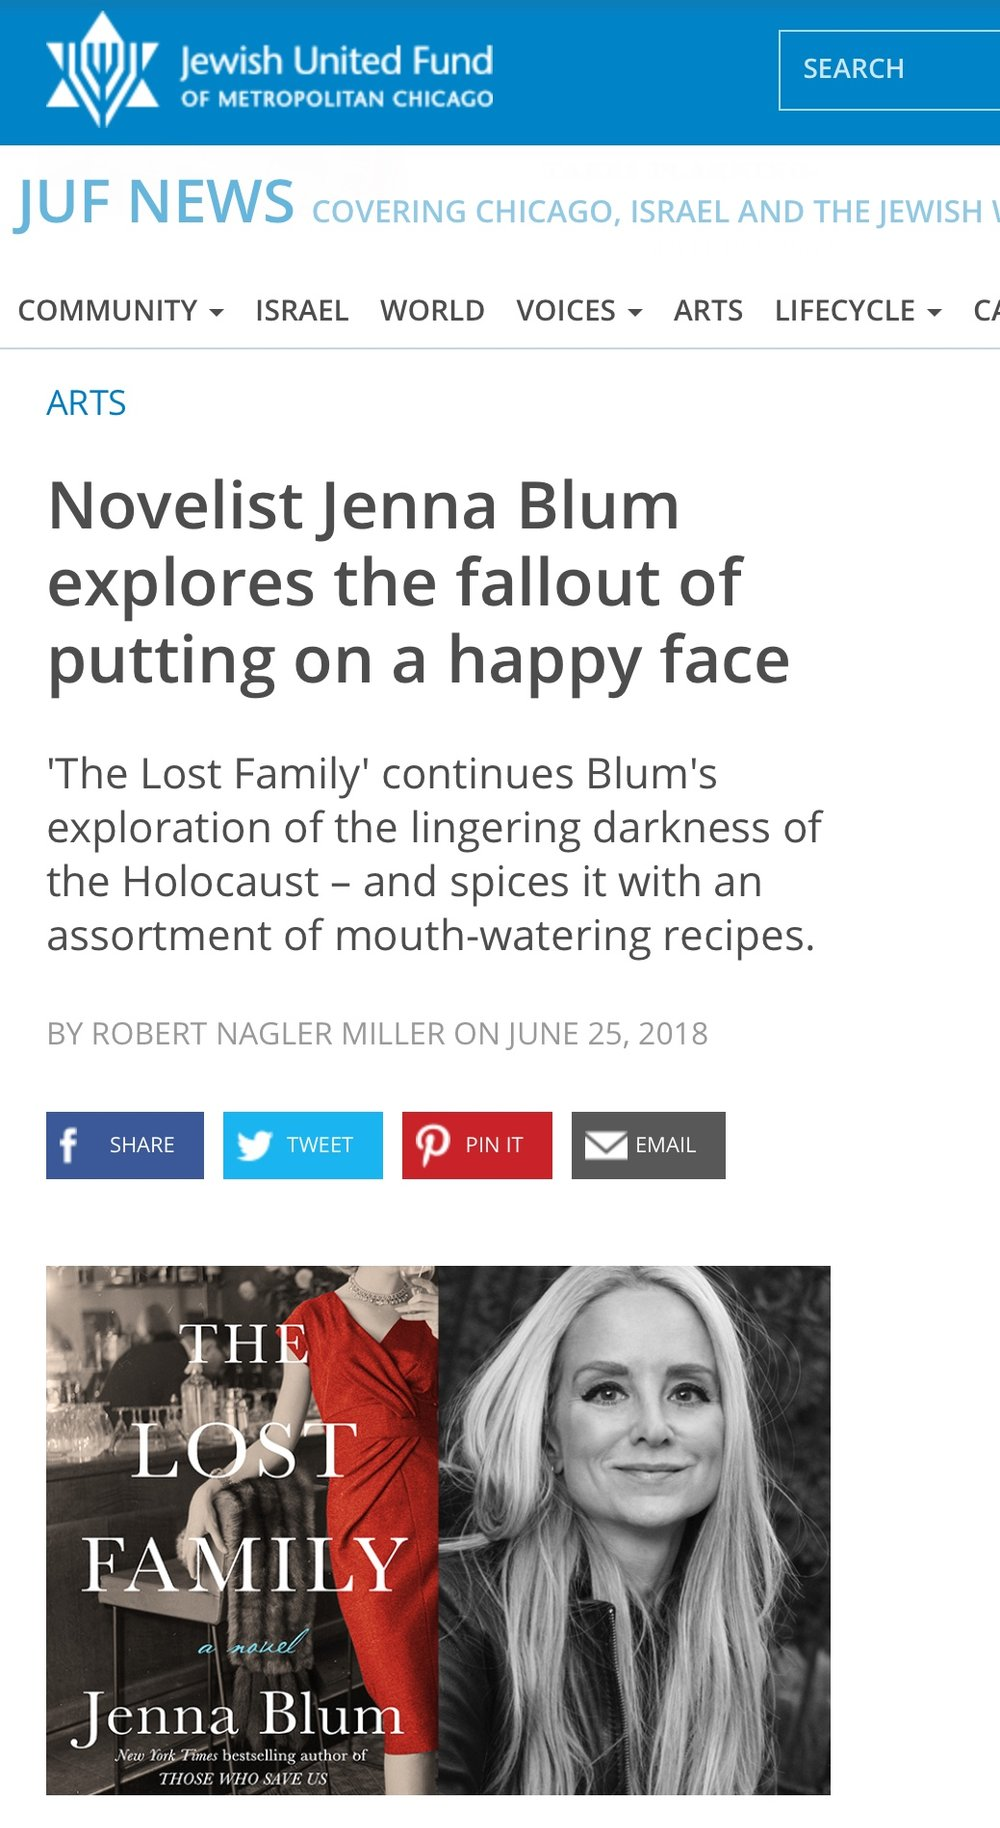 Jewish United Fund - Chicago News Reviews The Lost Family - We love this review of The Lost Family from the JUF-Chicago News, as multi-layered as a good Reuben in examining Jenna's motives and inspirations for writing the novel, including her family background, the Holocaust survivors she interviewed, religion, and FOOD. To read the review, click here.